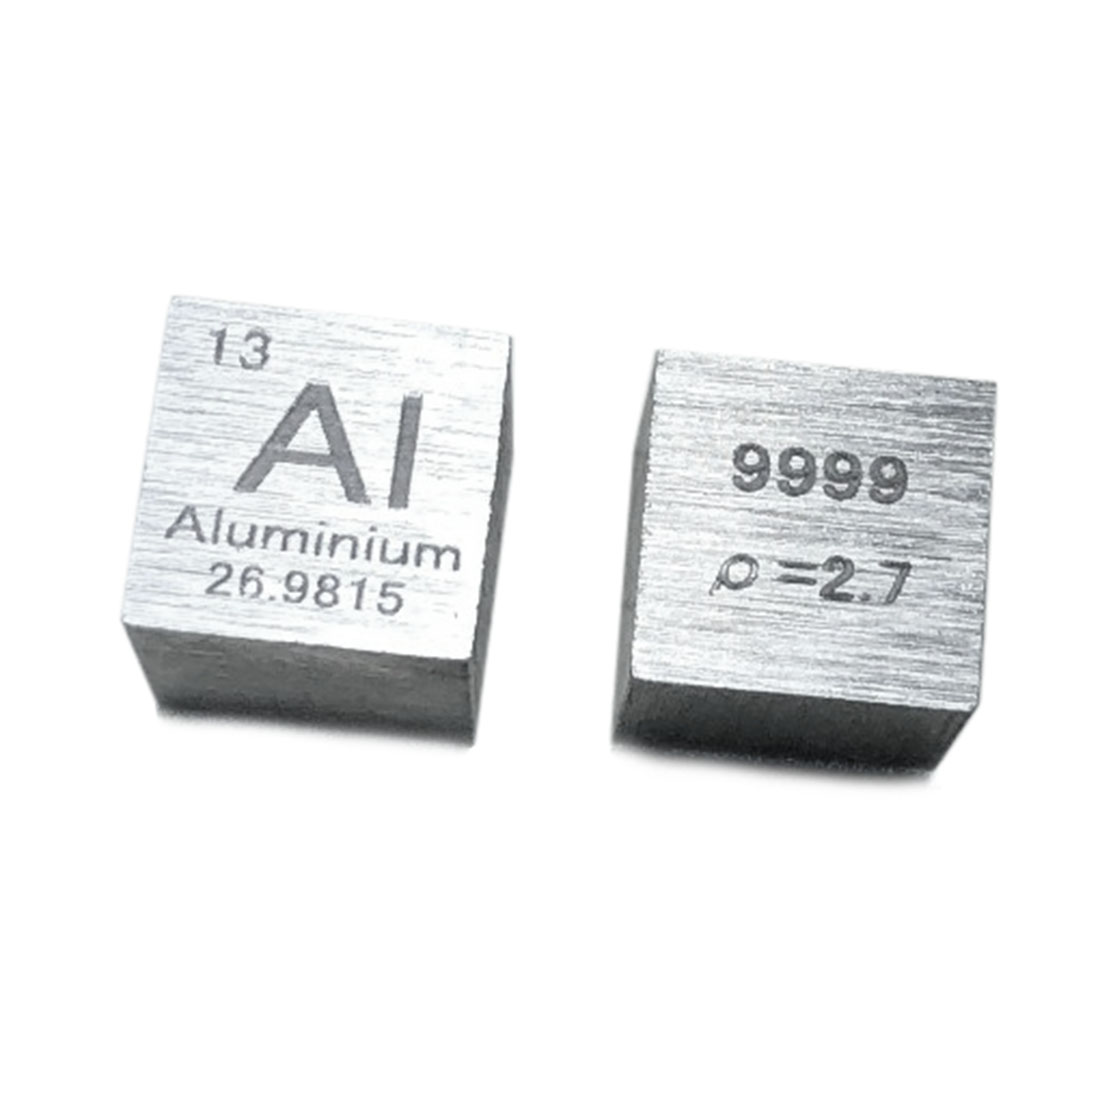 10 X 10 X 10mm Wiredrawing High Purity 4N Aluminum Cube Periodic Table Of Elements Cube For Research Study Education (Al≥99.9%)